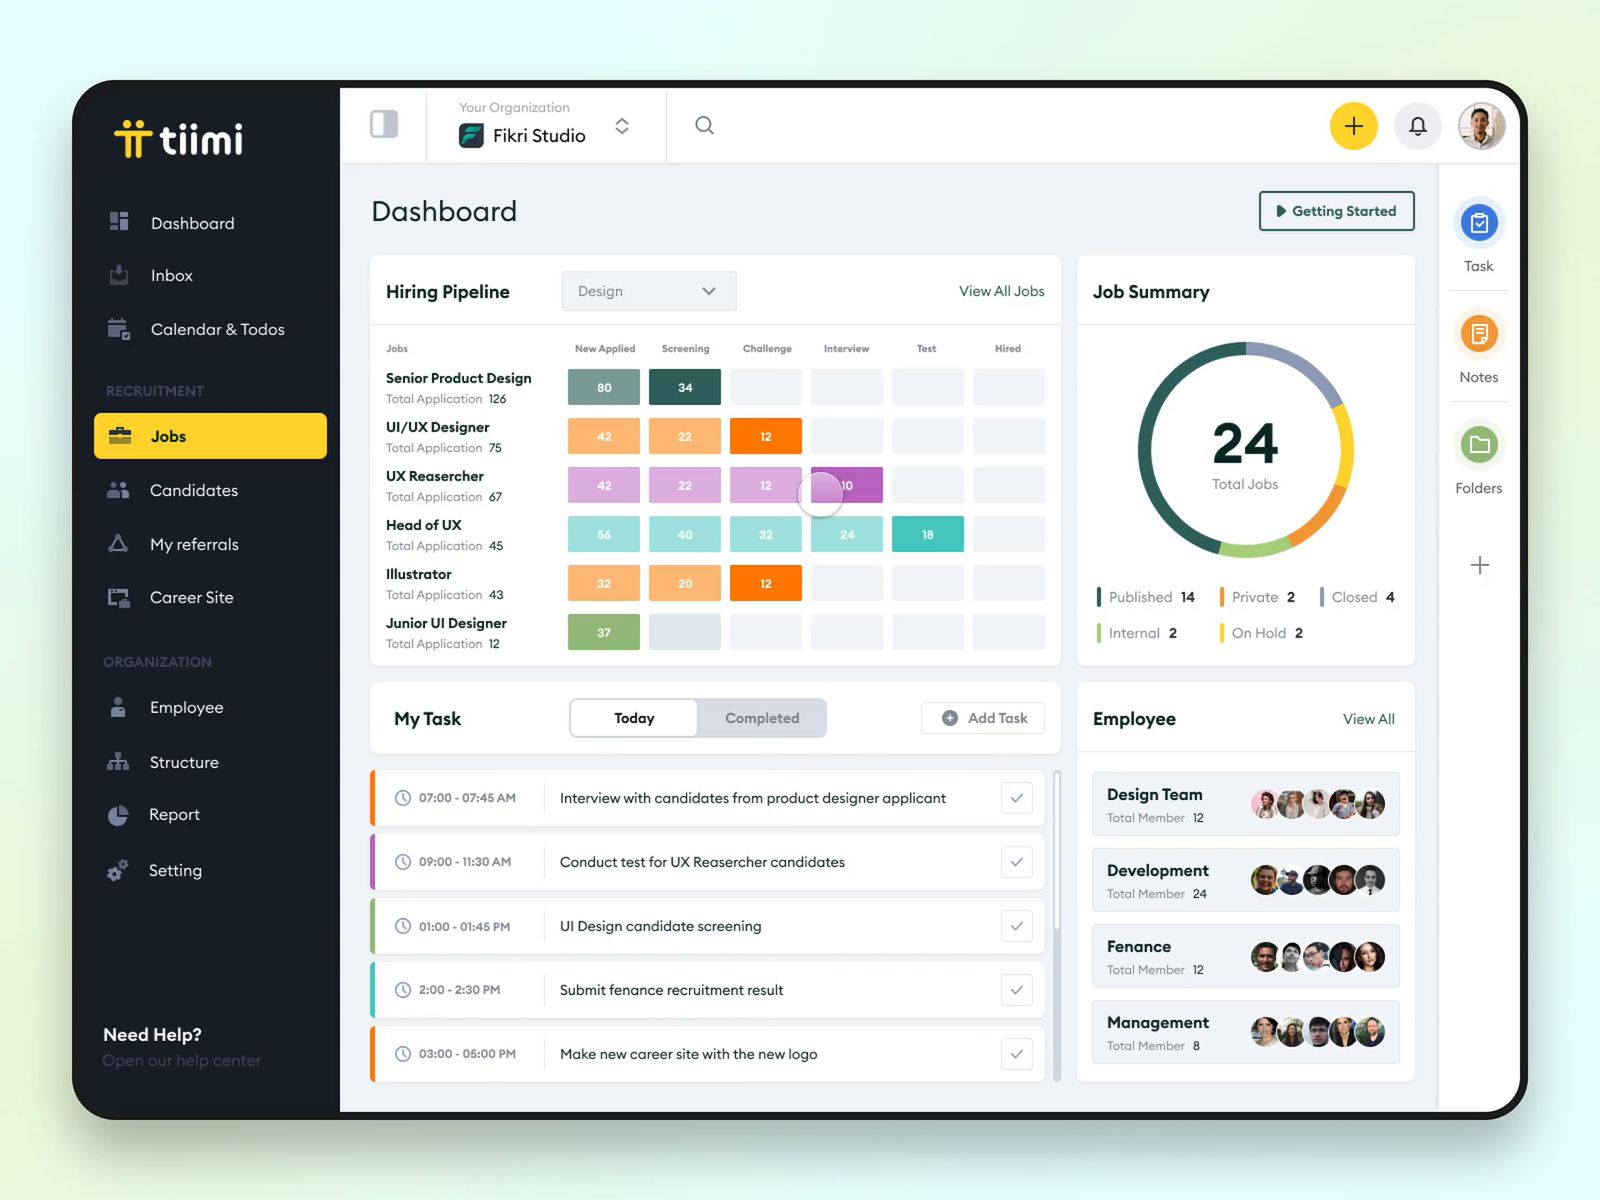 My work place at home by Emrah Demirag on Dribbble